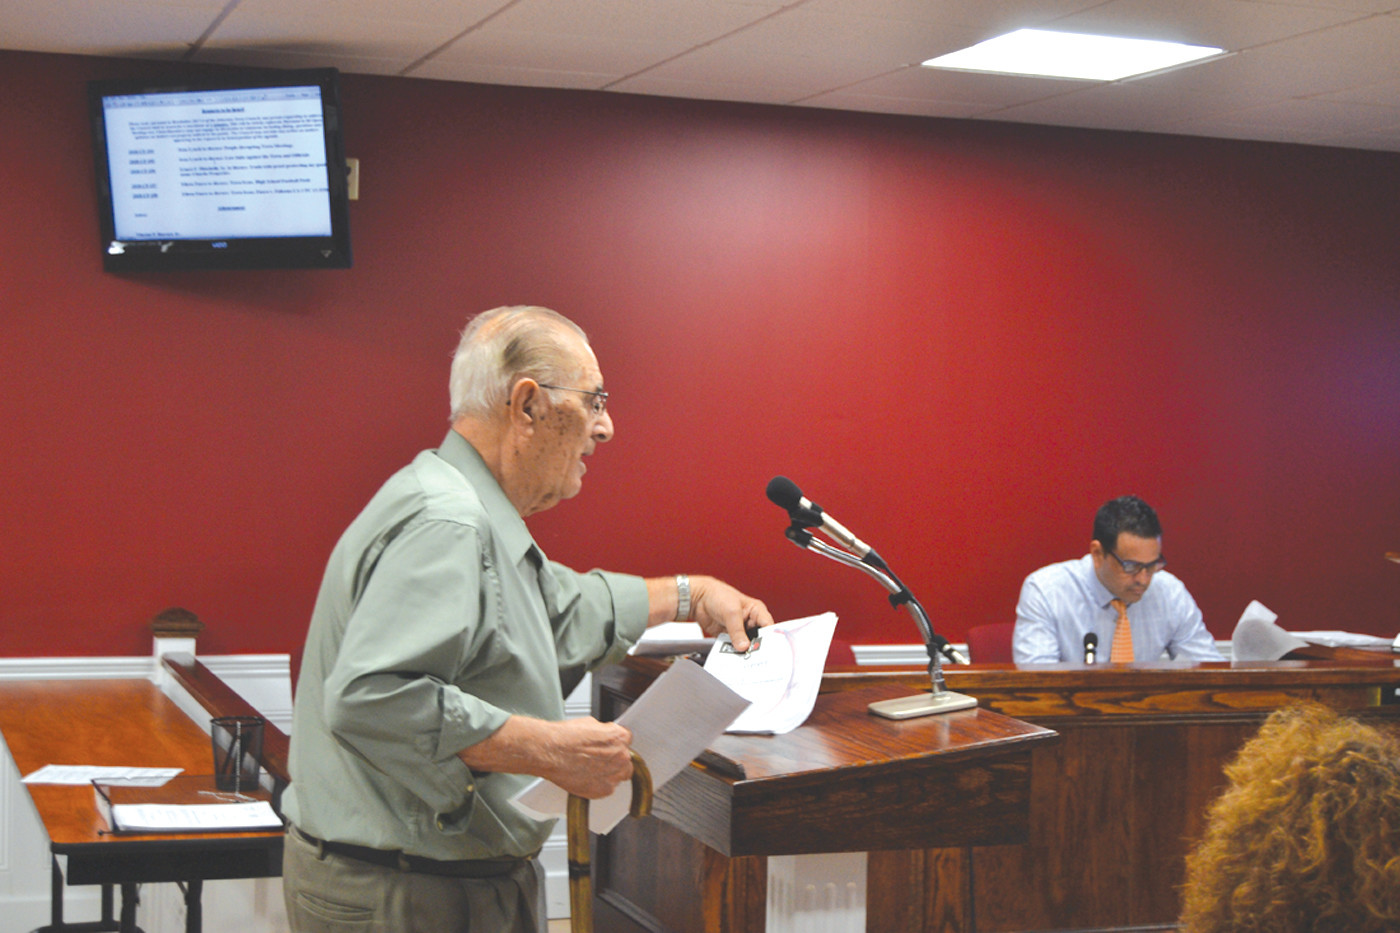 CLEARING HIS NAME: Former Councilman Ernest Pitochelli addressed claims made against him during recent Council meetings.